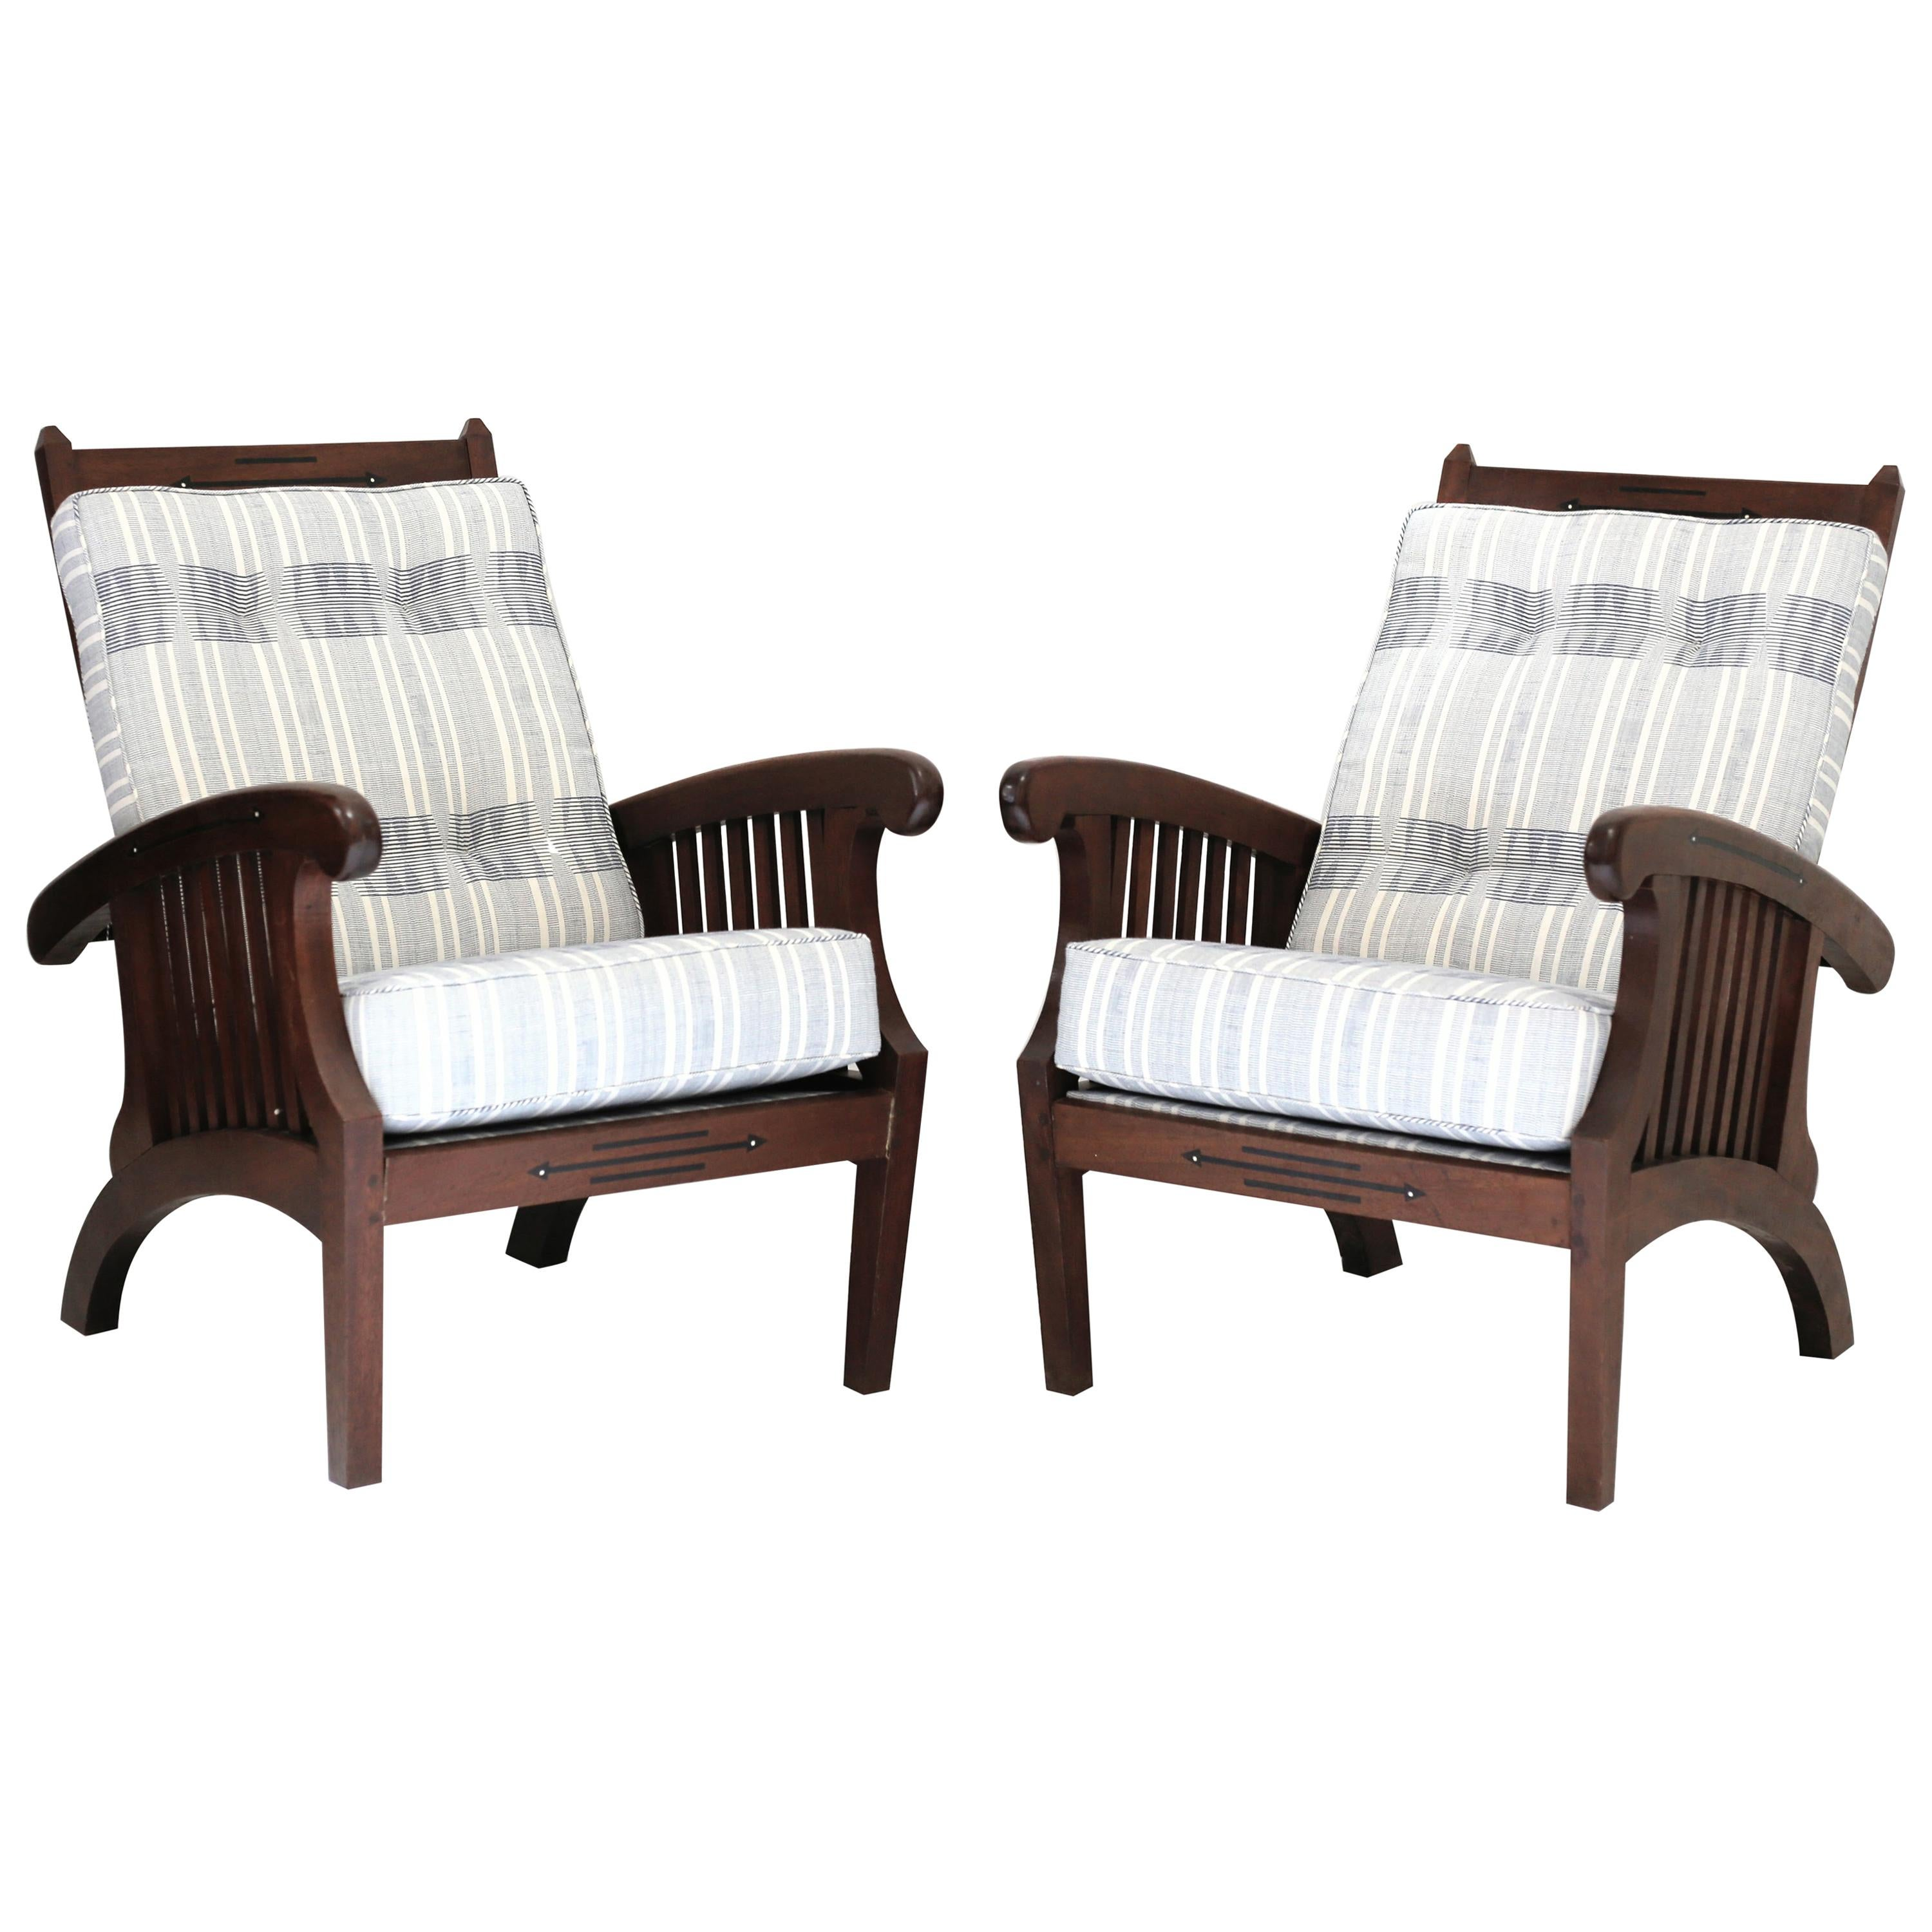 Anglo Indian Inlaid Chair, Pair